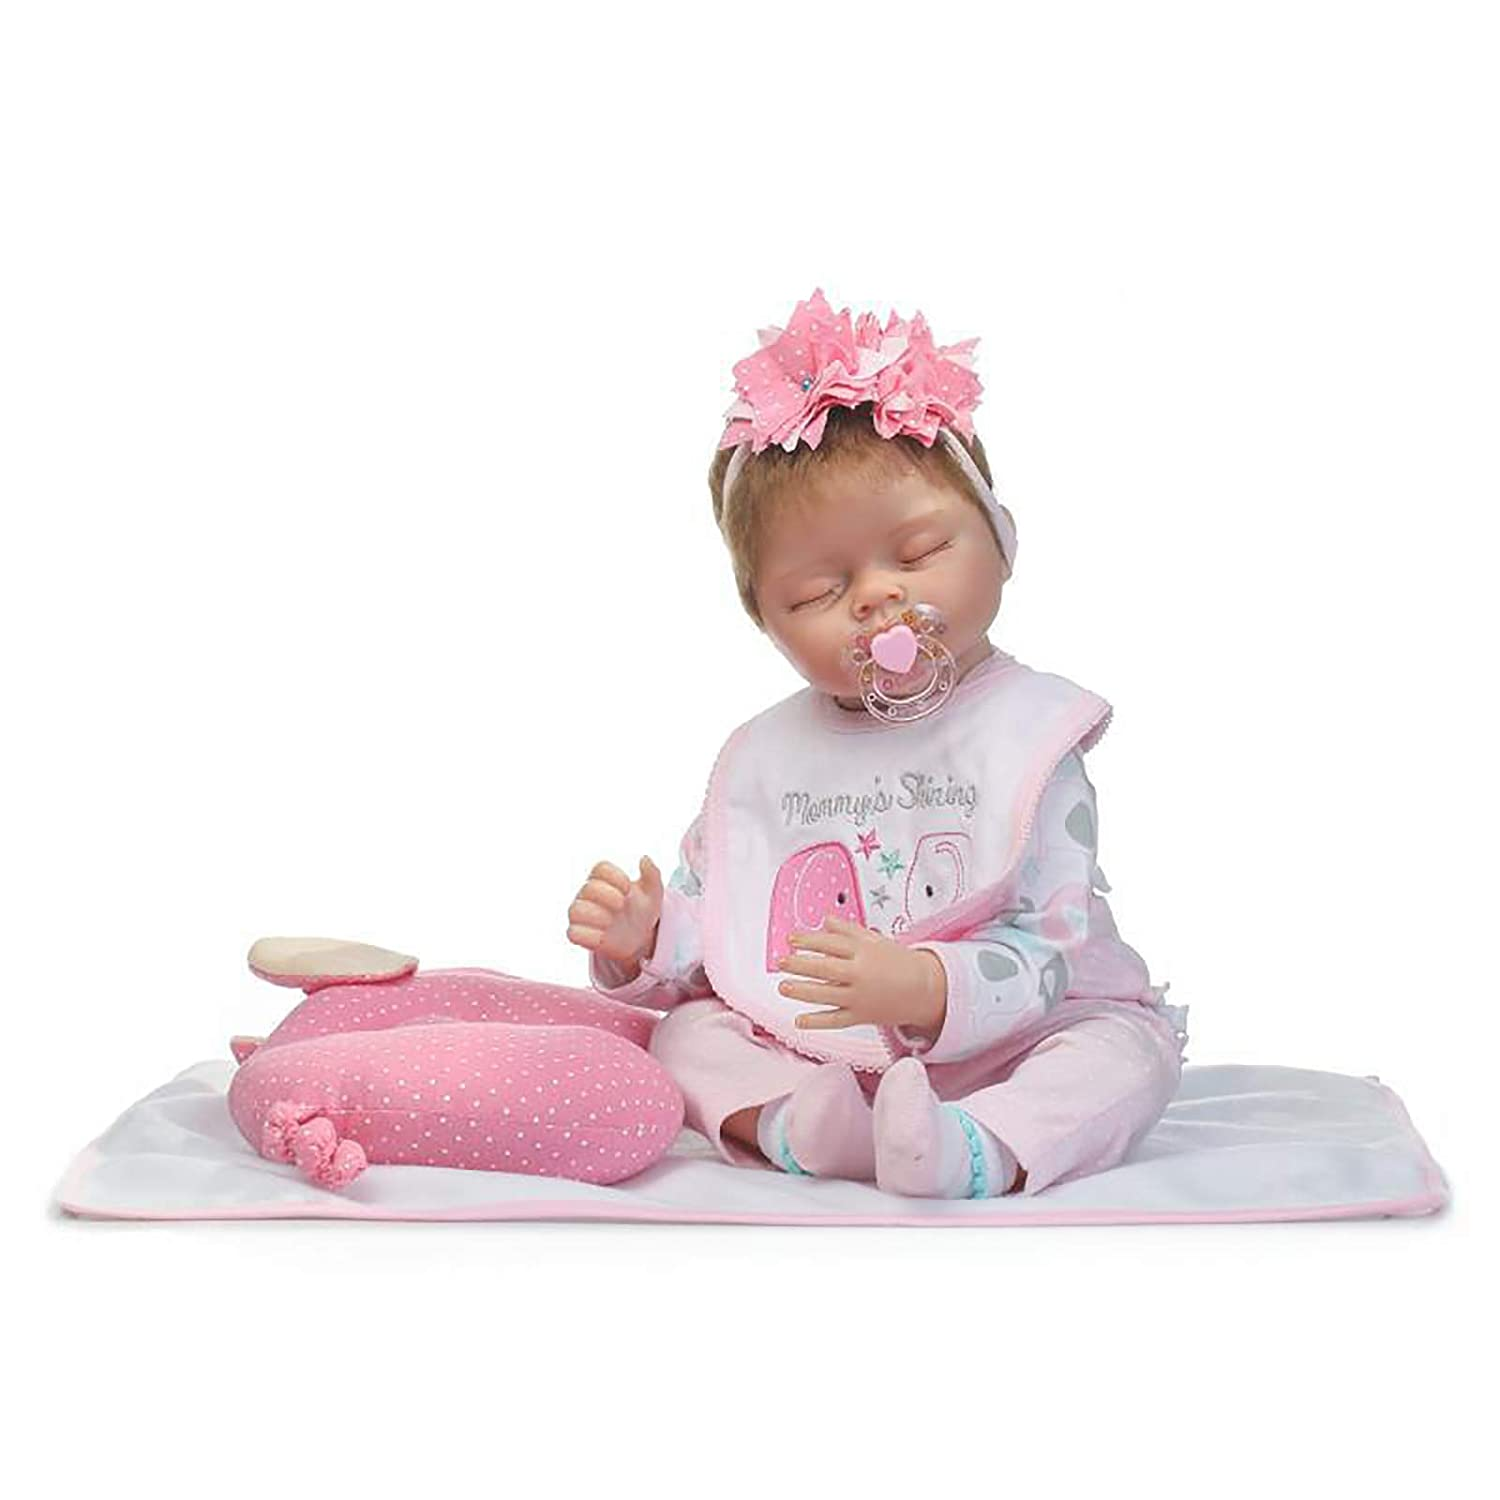 LHKAVE Reborn Baby Dolls 22 Soft Cloth Body Silicone Realistico Neonato Slepping Baby, Really Soft Body Baby Girl Doll,Bambolotti Giocattoli